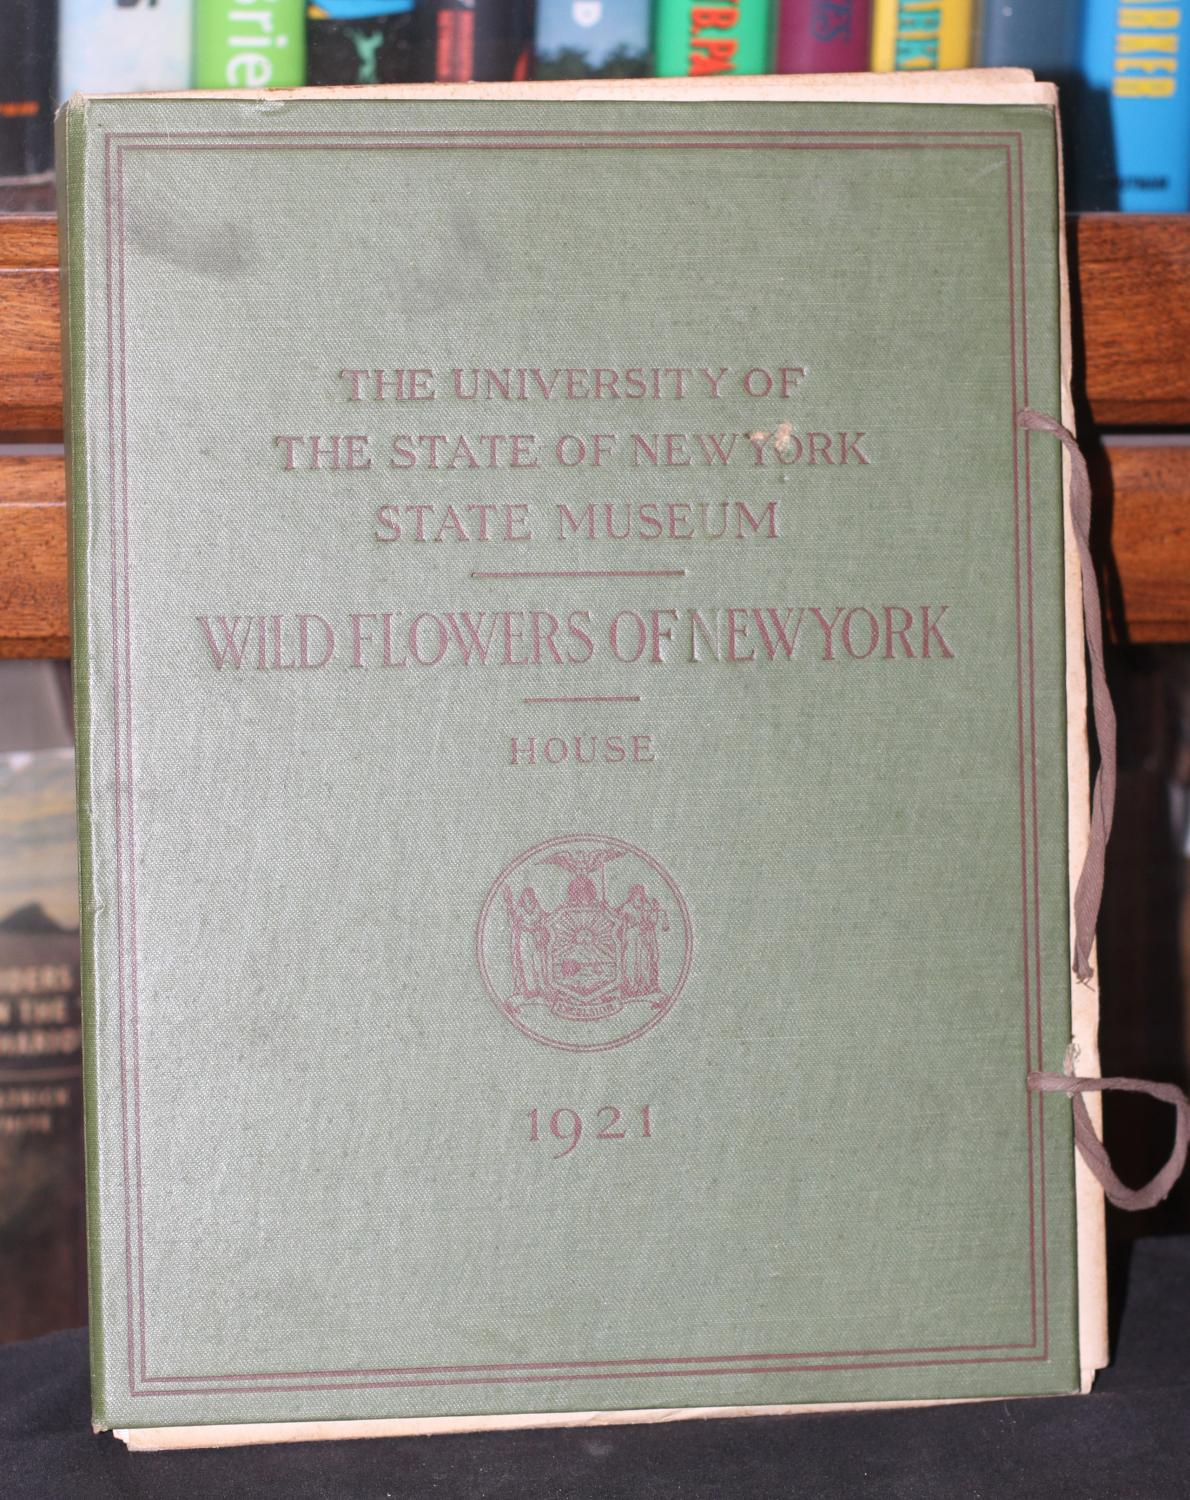 Wildflowers of New York University of the State of New York Near Fine Hardcover